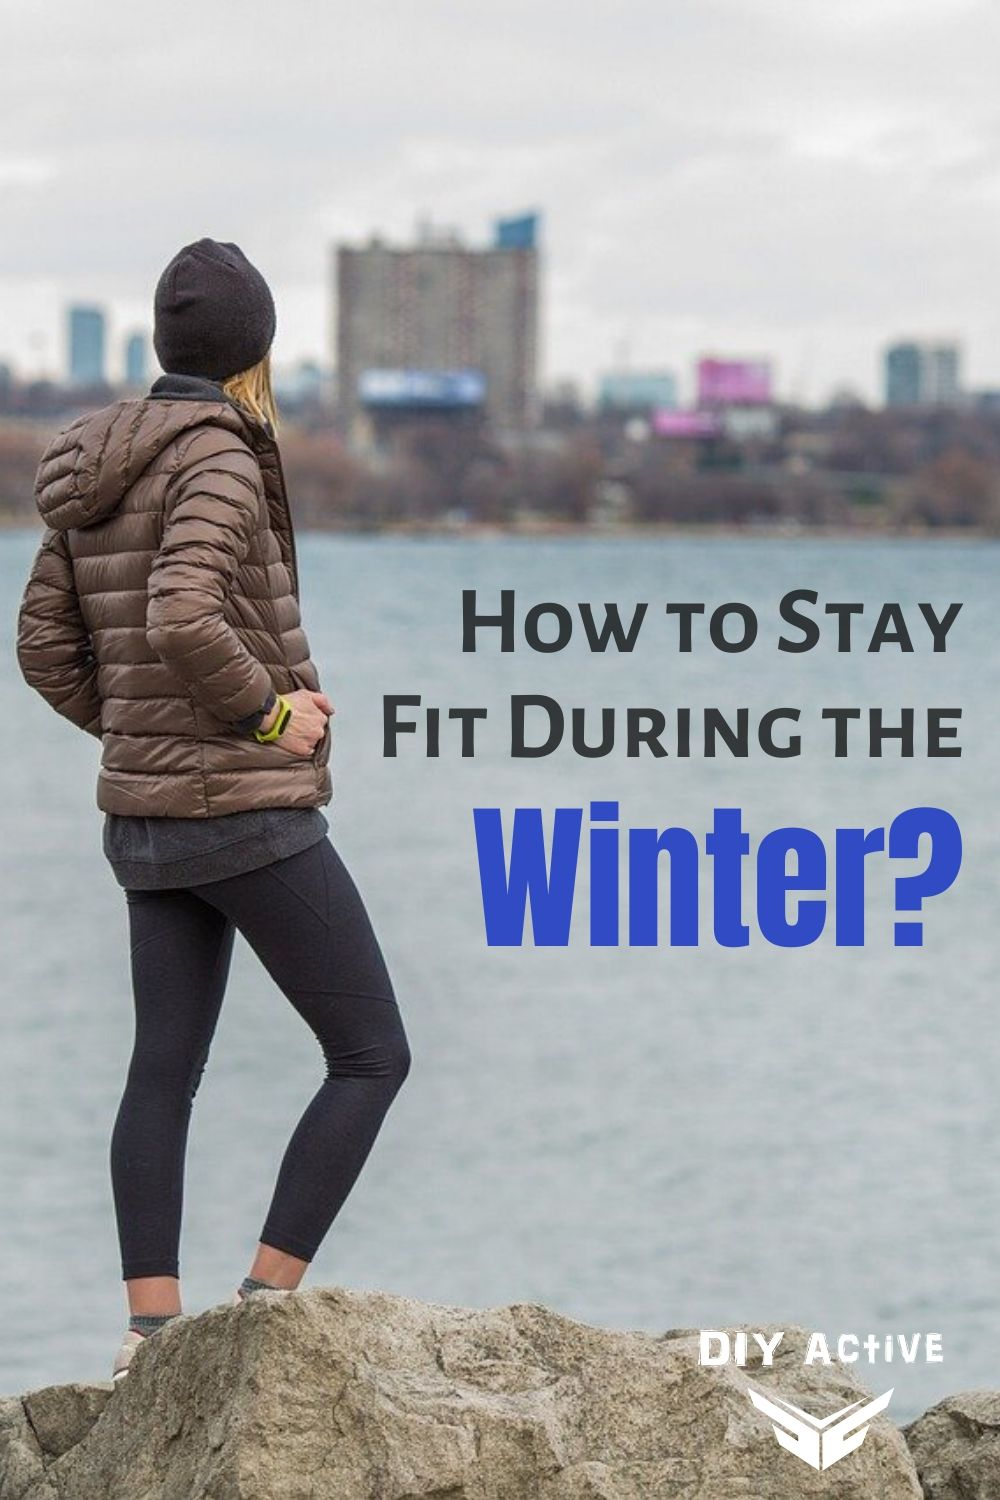 How to Stay Fit During the Winter